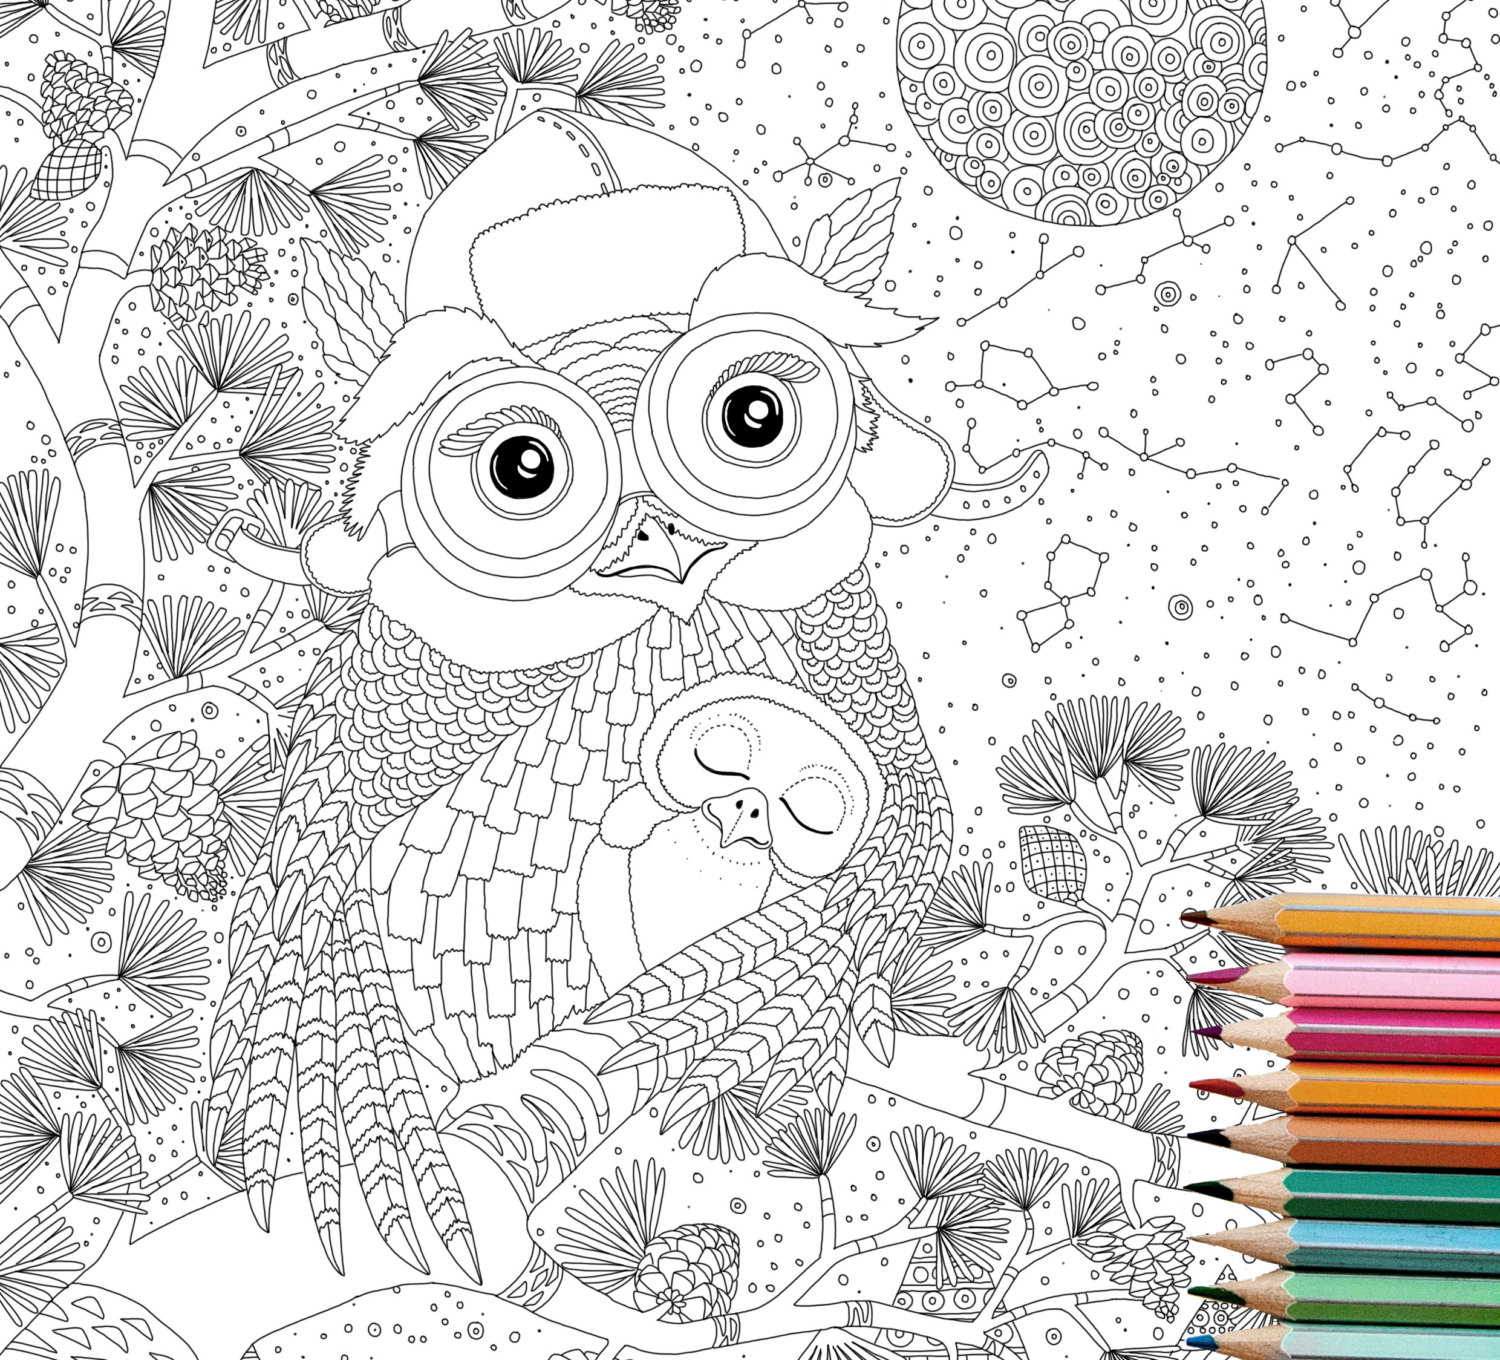 Owlet coloring #7, Download drawings